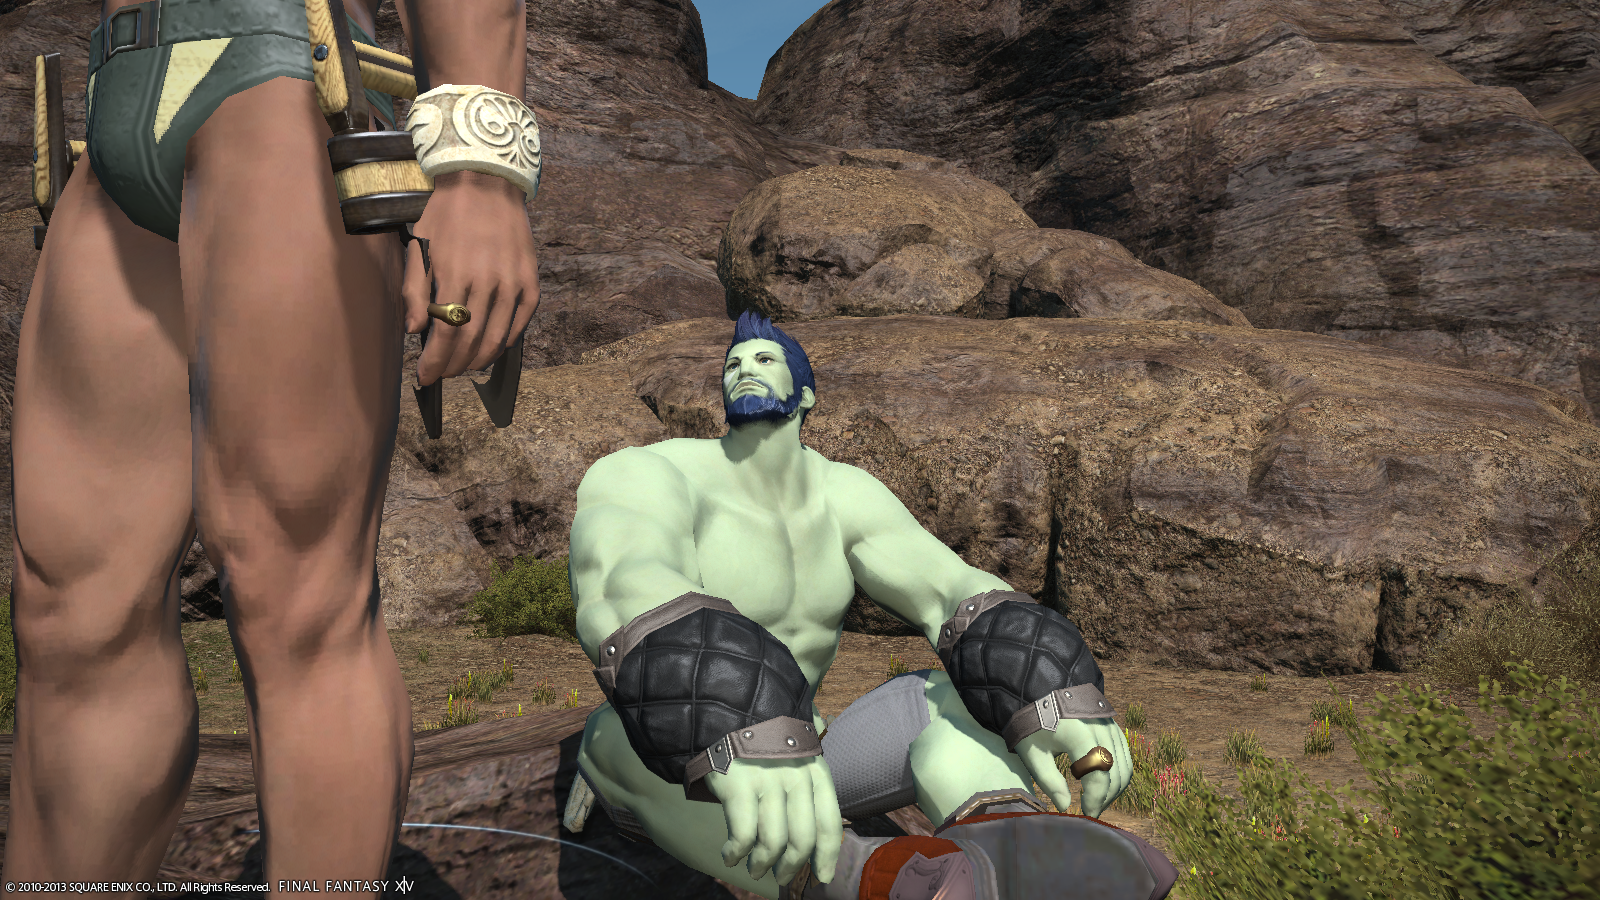 Nude patch final fantasy xiv